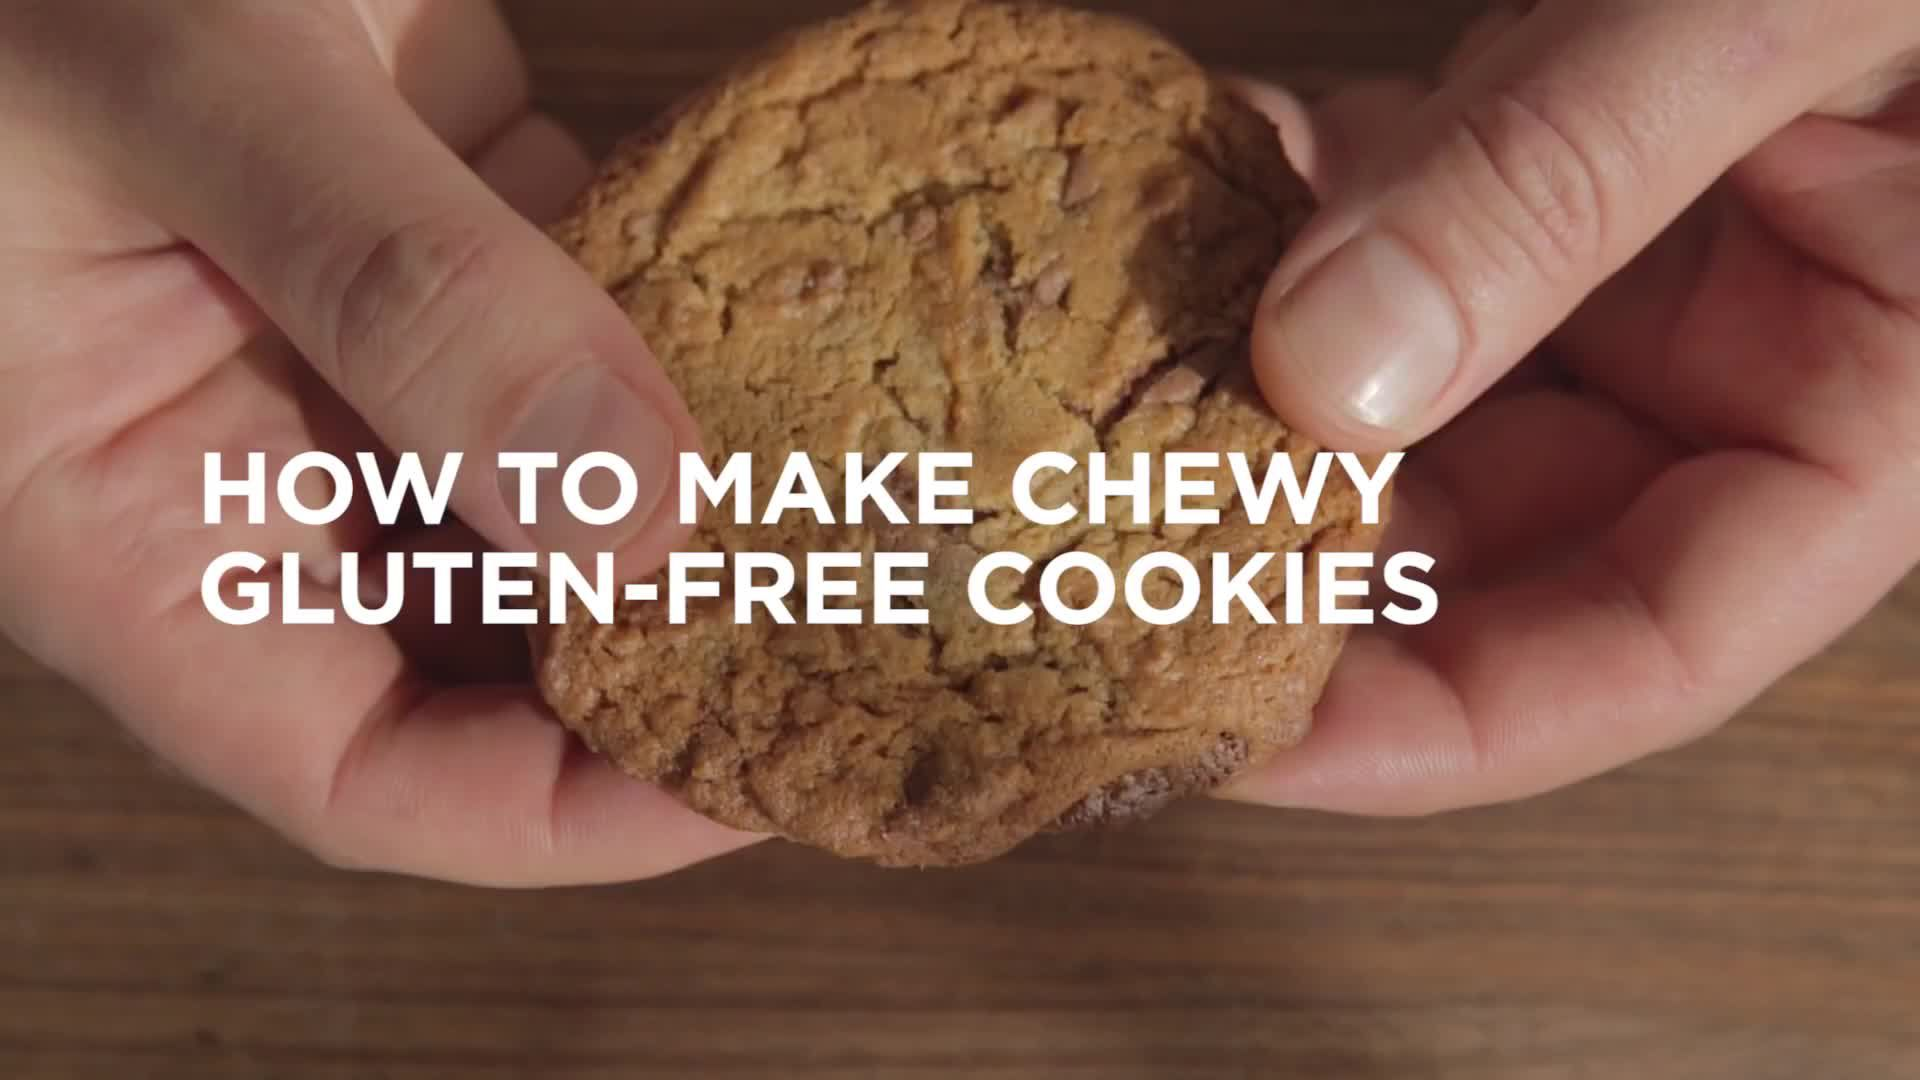 How to Make Chewy (Gluten-Free) Cookies